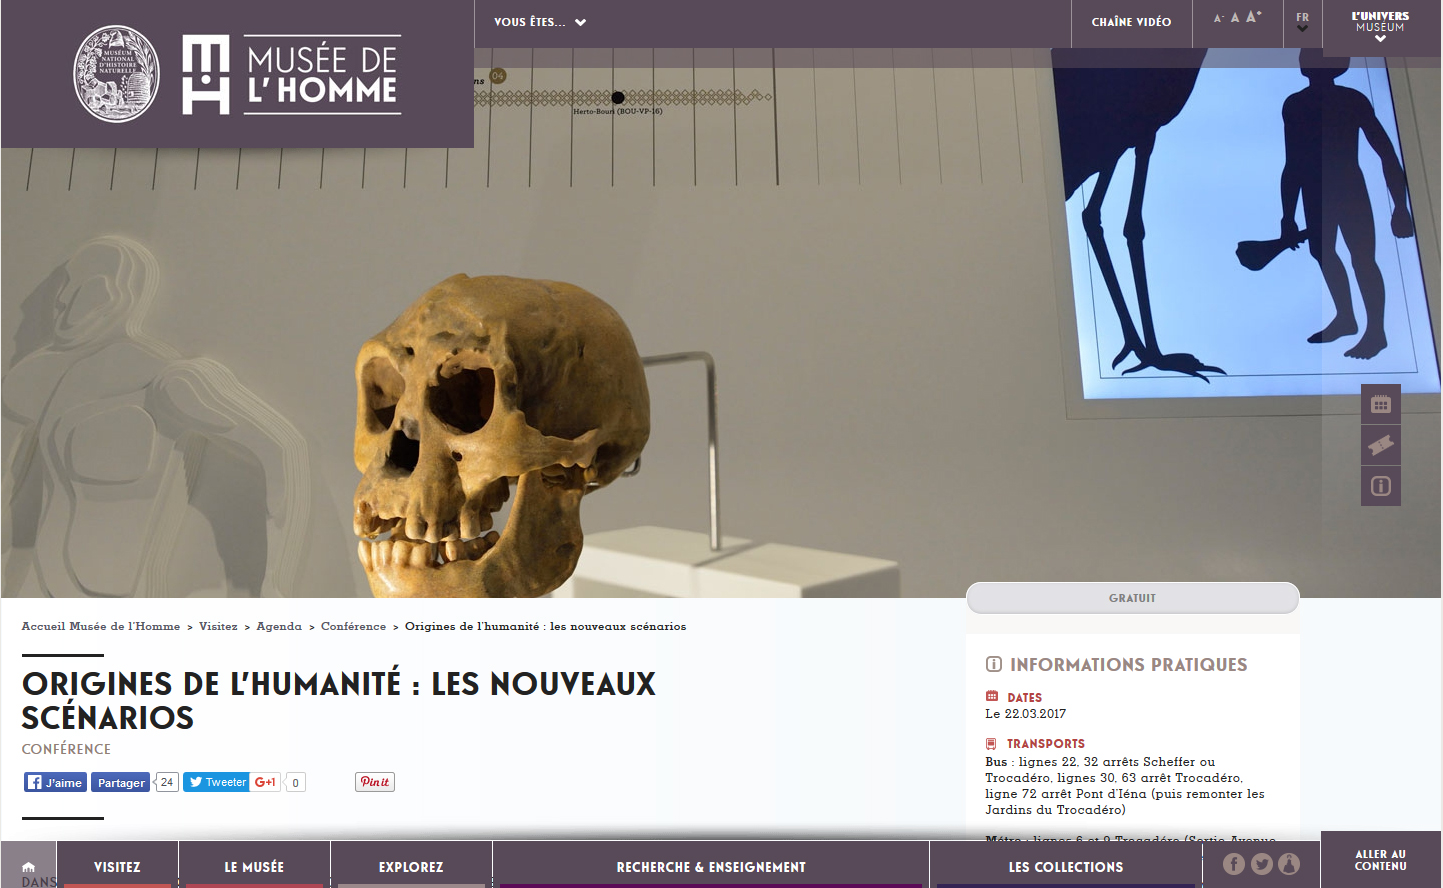 conf-musee-homme-22-03-2017.jpg